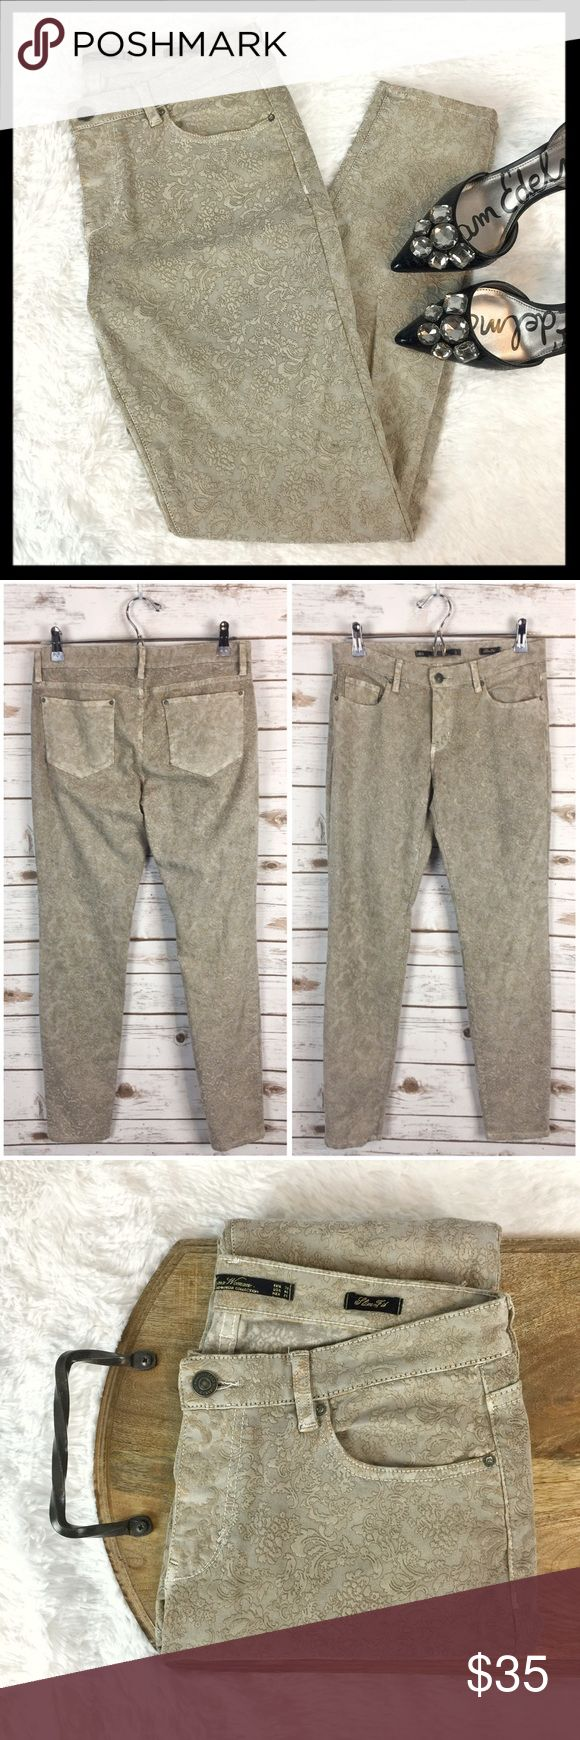 """zara // damask jacquard slim fit tan skinny jeans These awesome skinnies have a textured damask jacquard texture and slim fit. 98% cotton, 2% spandex. Size is US 6. Great preowned condition. Waistband measures 15"""" across lying flat. Rise is 8.25"""". Inseam is 29.5"""". Zara Jeans Skinny"""